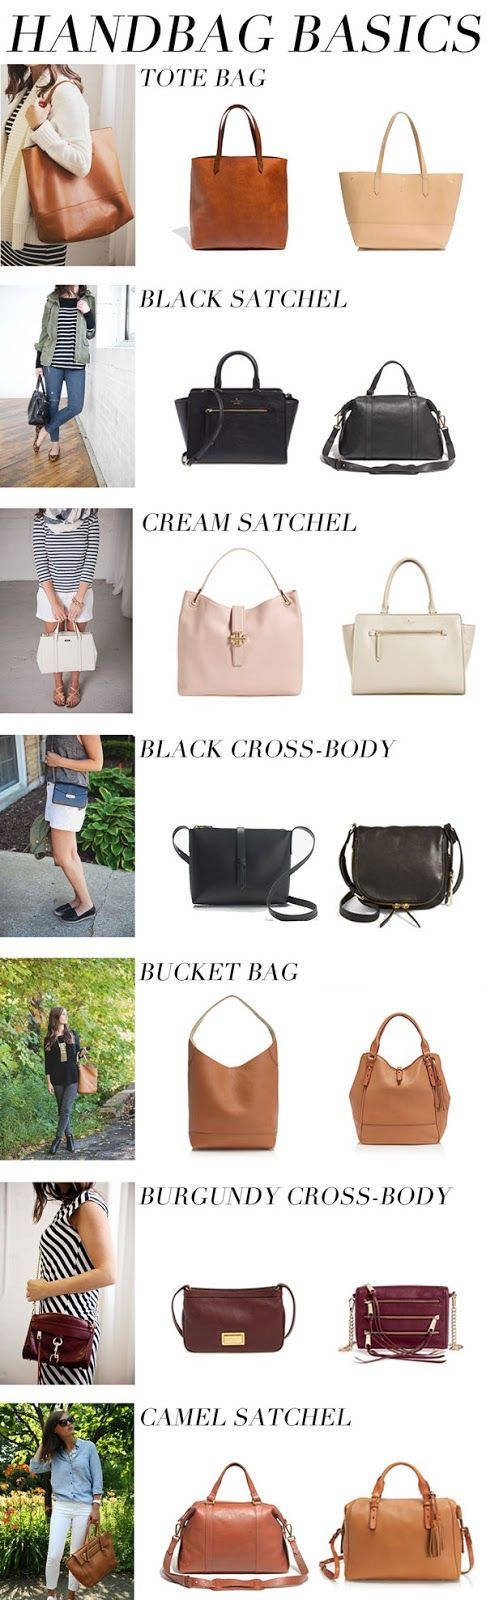 A good handbag or purse can really pull an outfit together - we all know that, right!?! There is something that carrying a gorgeous handbag does both to an outfit and to the gal wearing it. It feels great to carry a beautiful bag. There is no doubt about that. Read more styling tips: www.tothineownstylebetrue.com